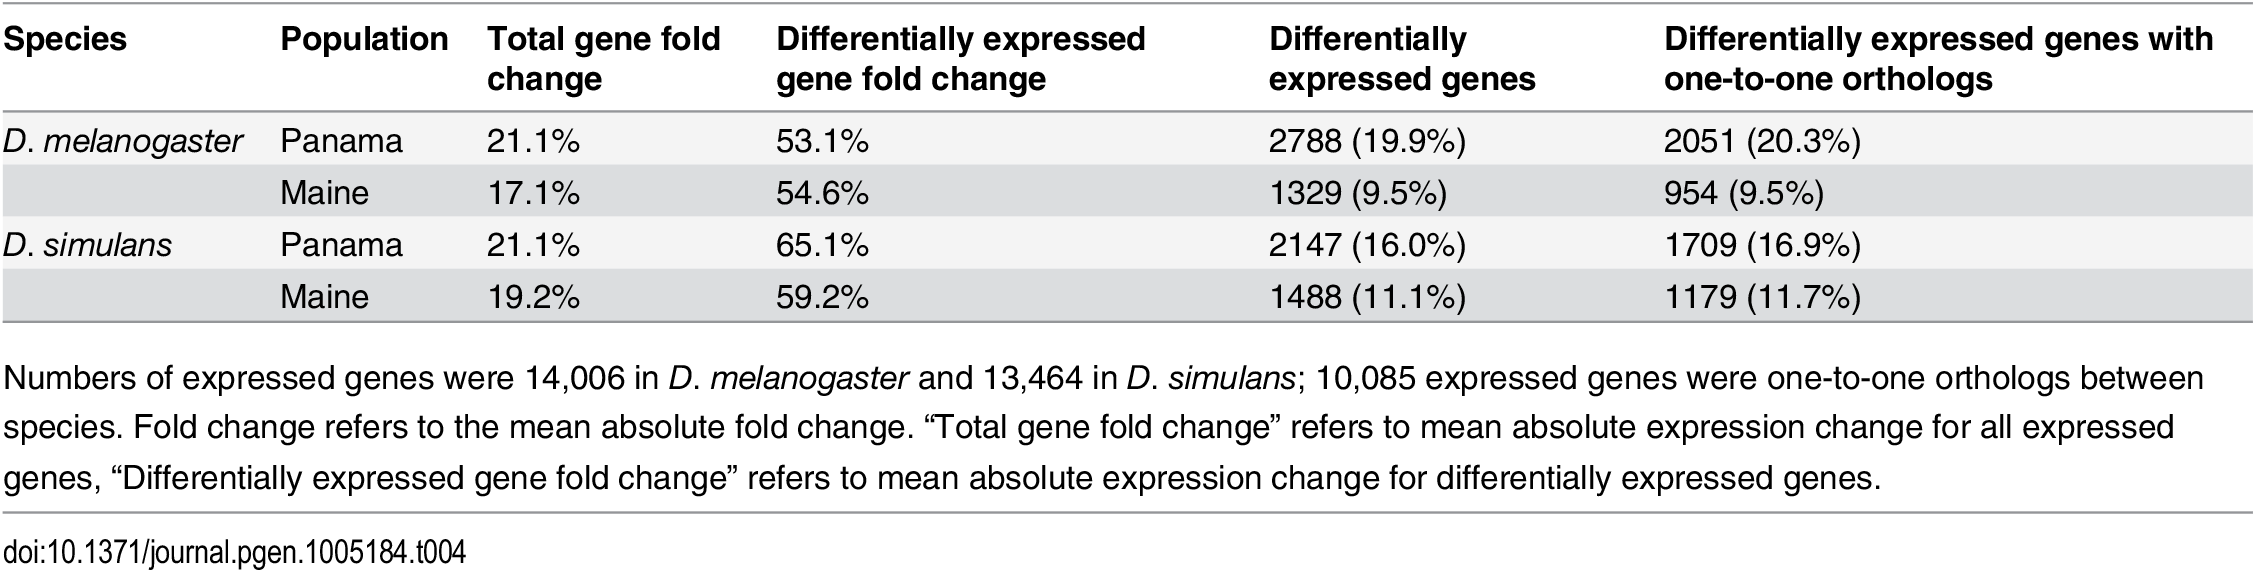 Differential gene expression at 21°C vs. 29°C within populations.